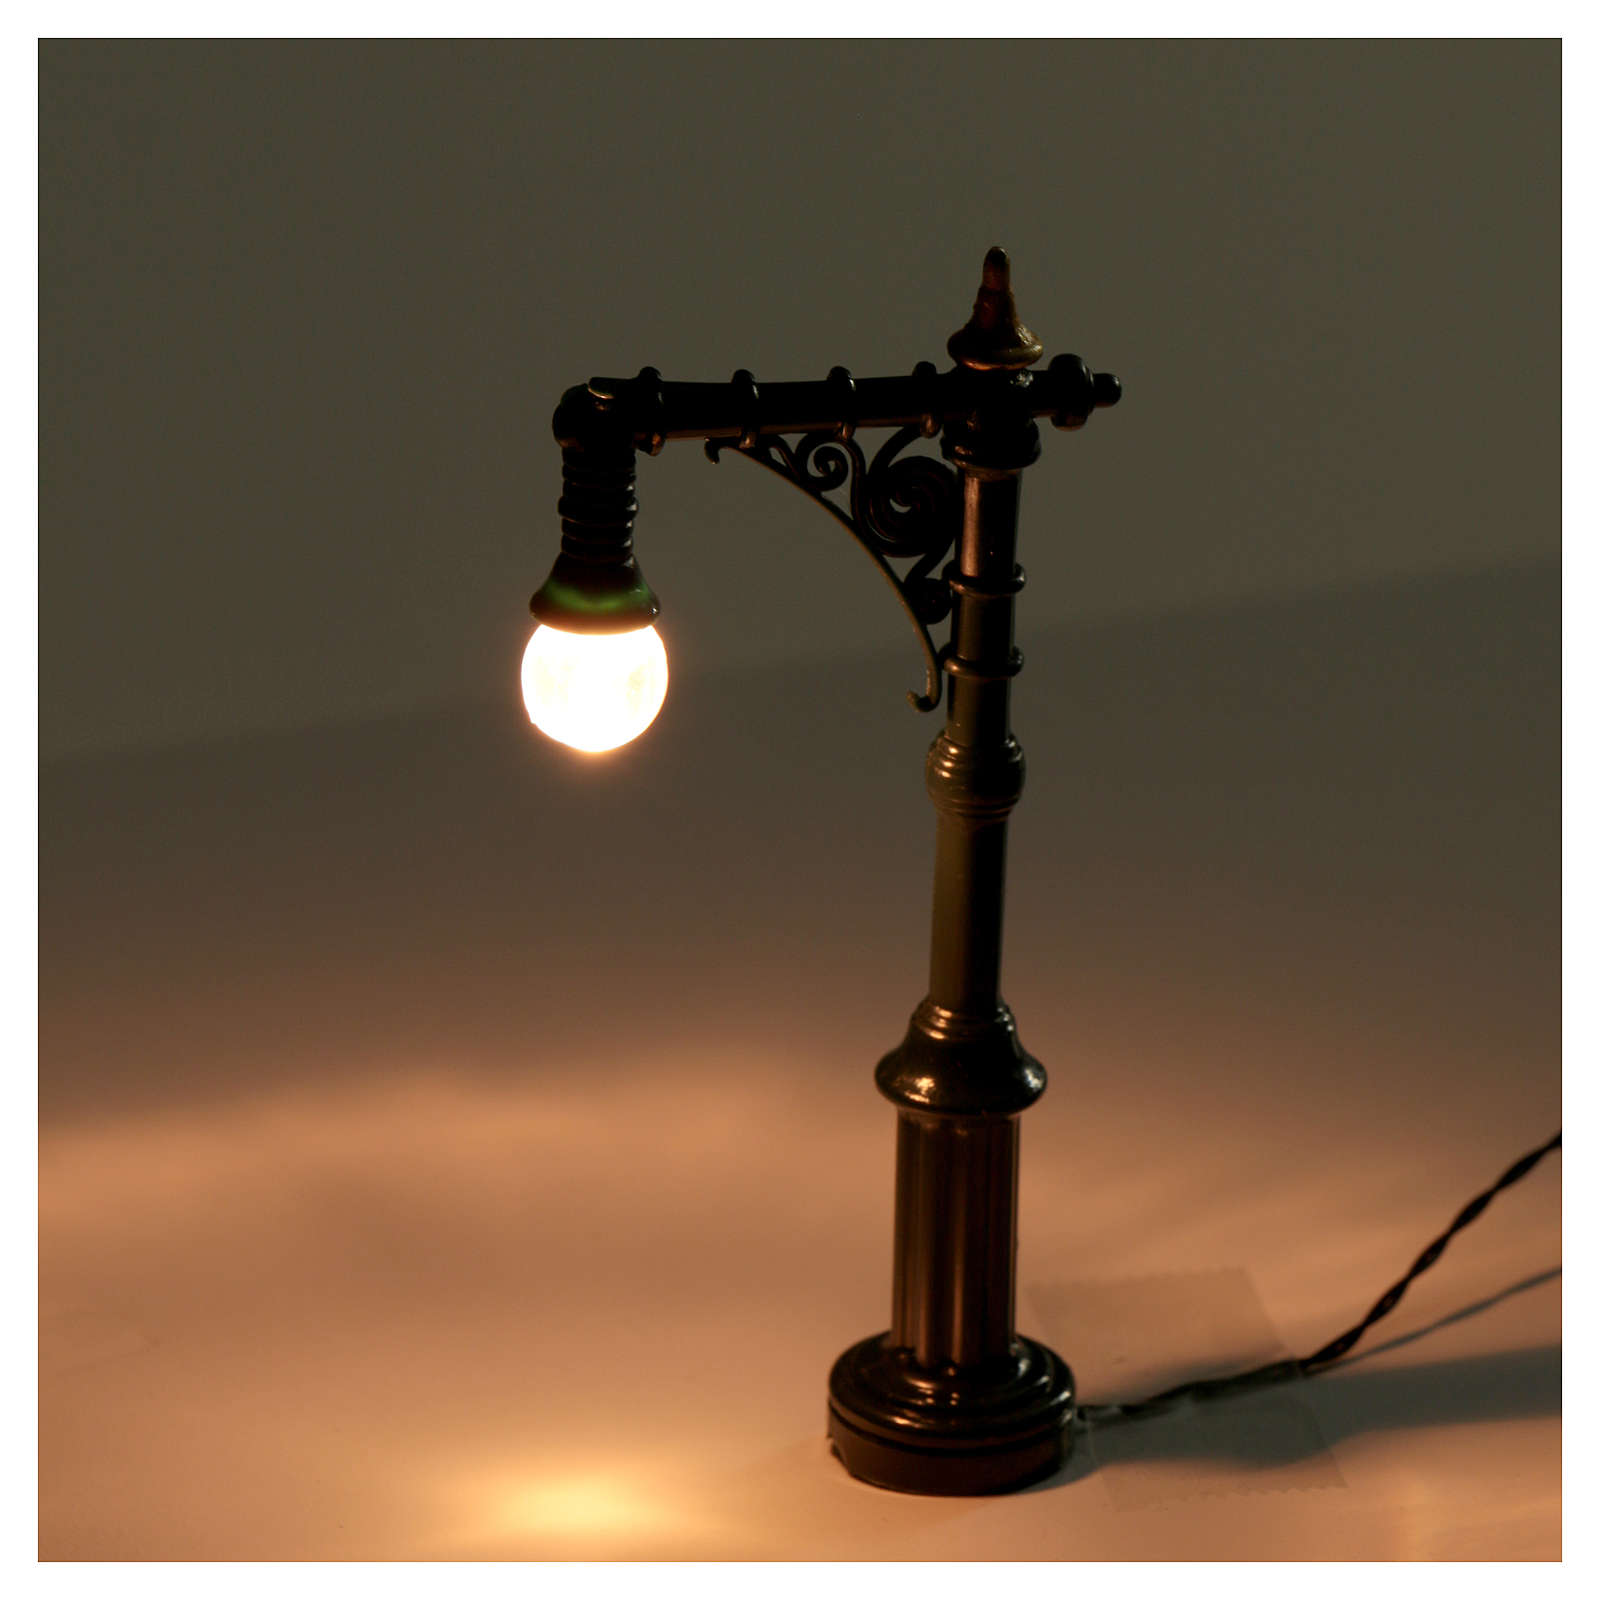 Battery powered street lamp, 4.5x2x10cm 4